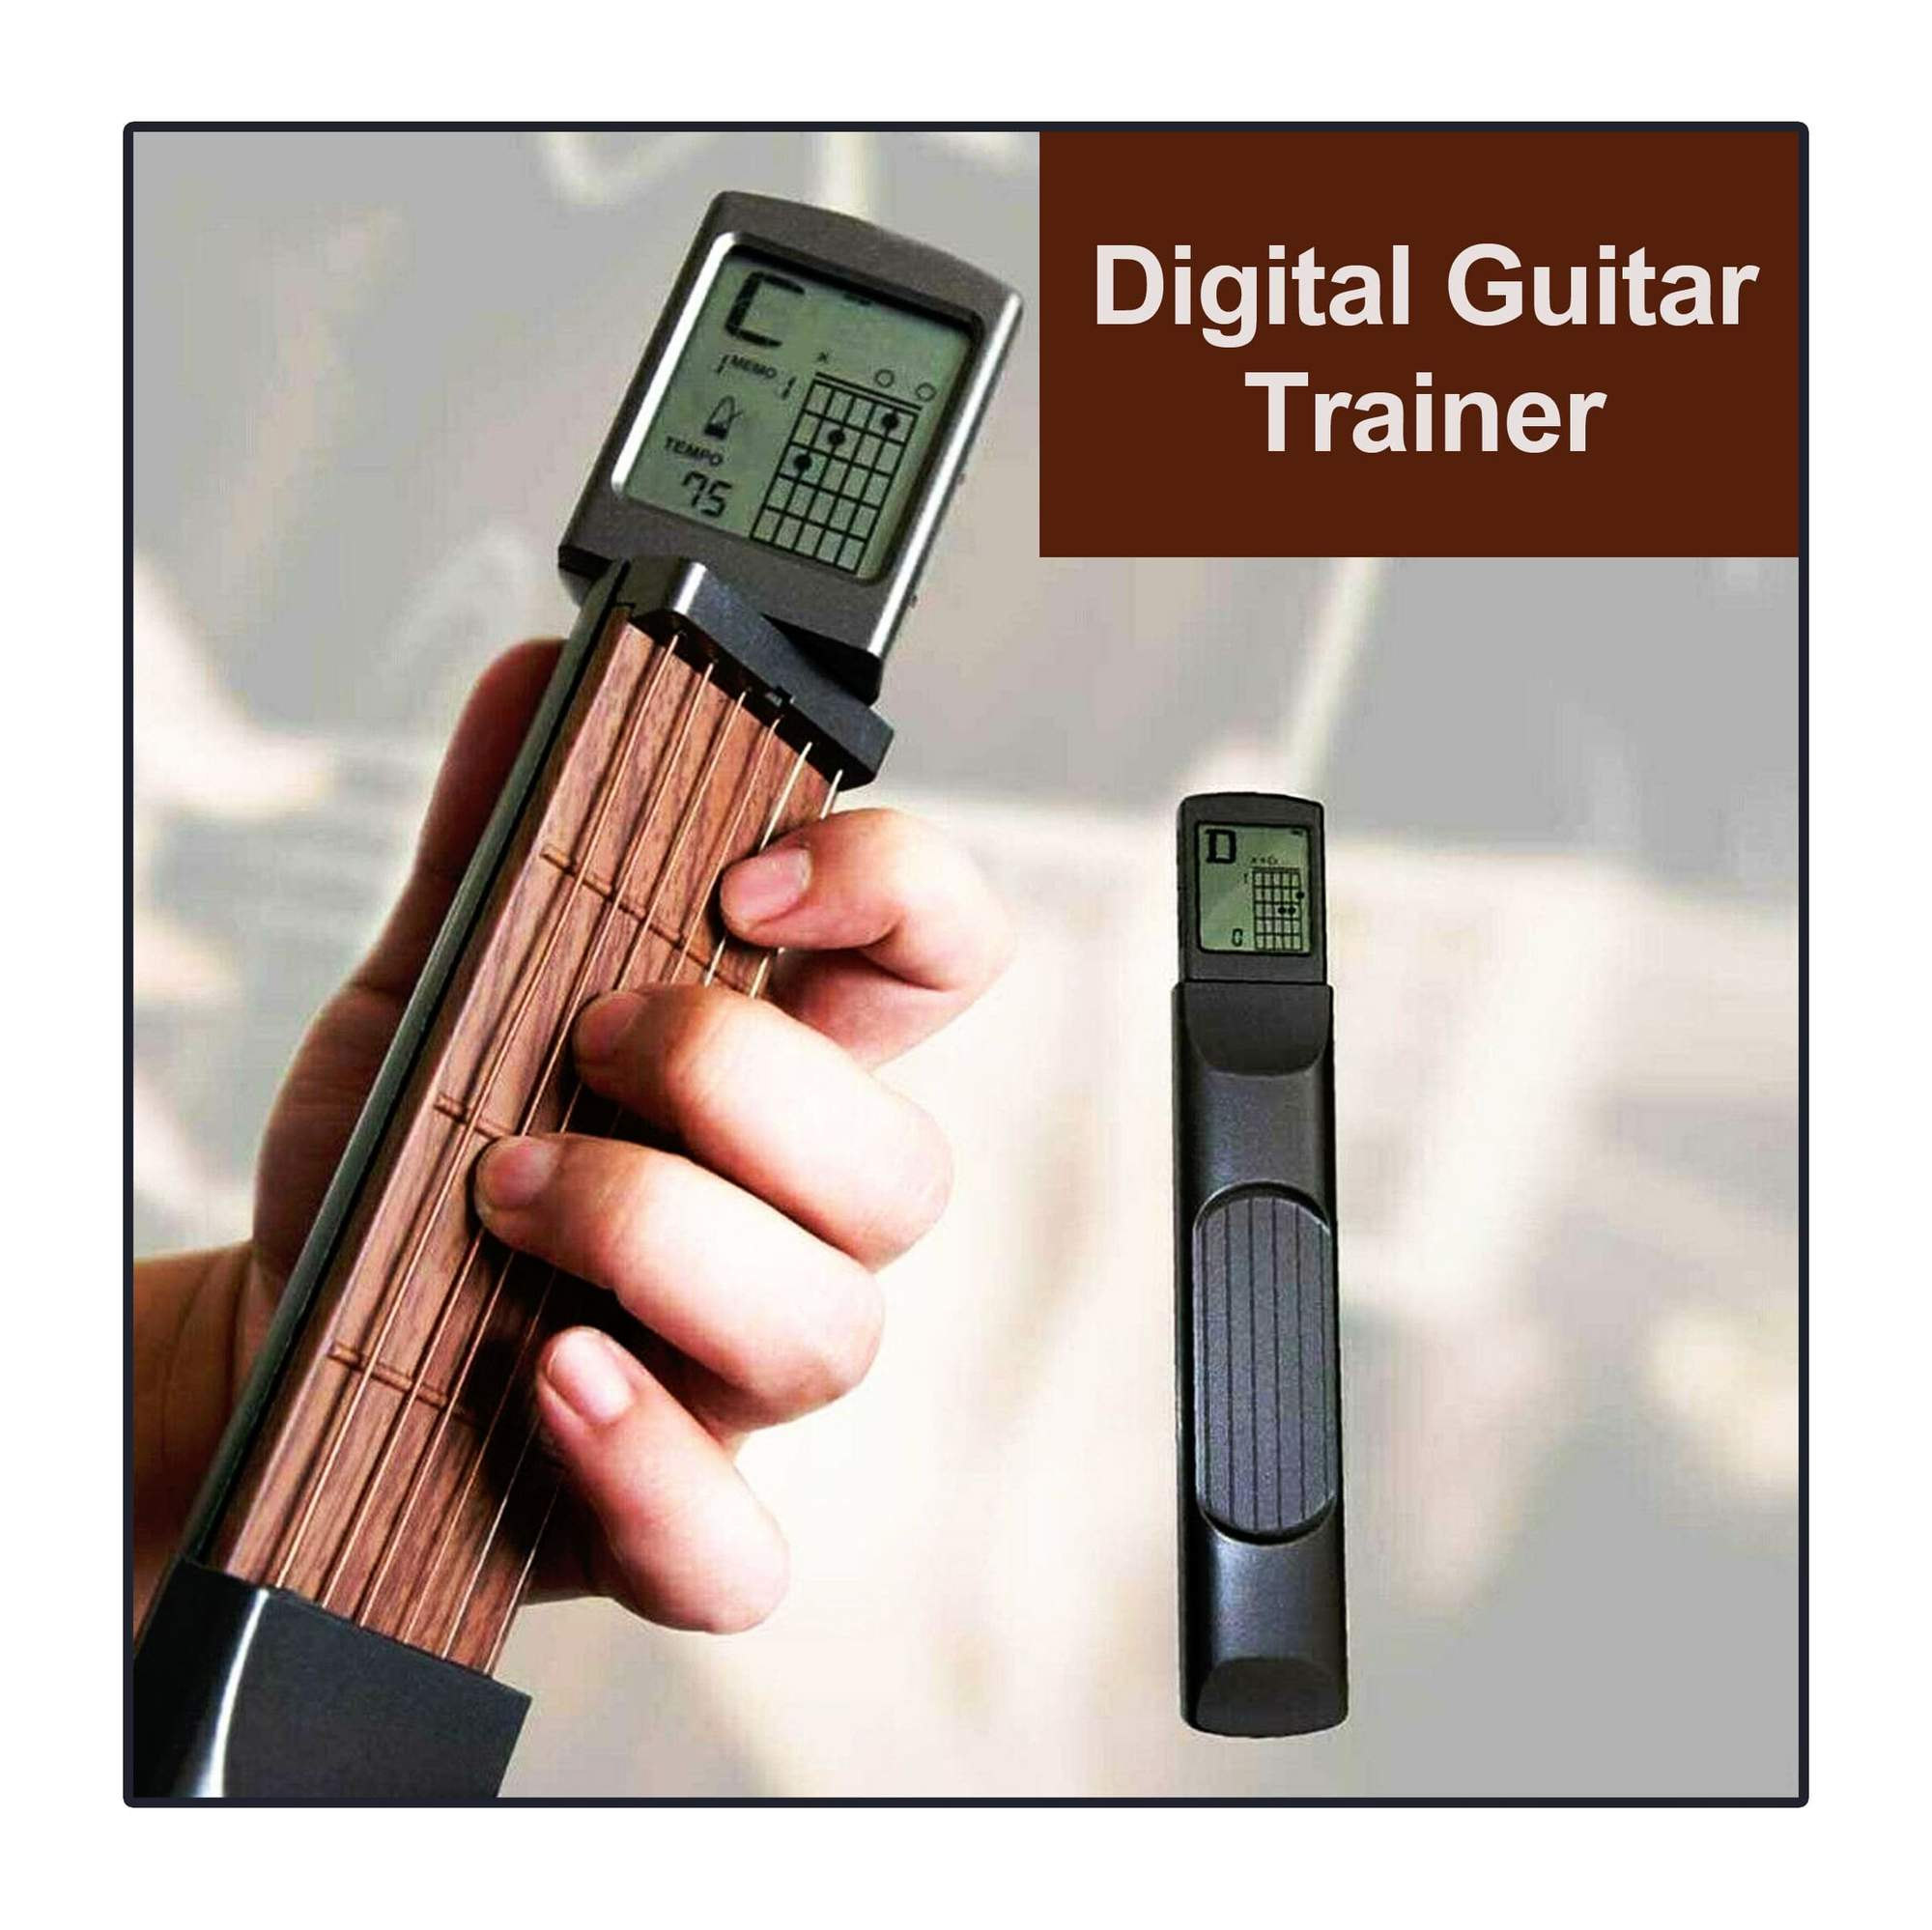 DIGITAL GUITAR TRAINER